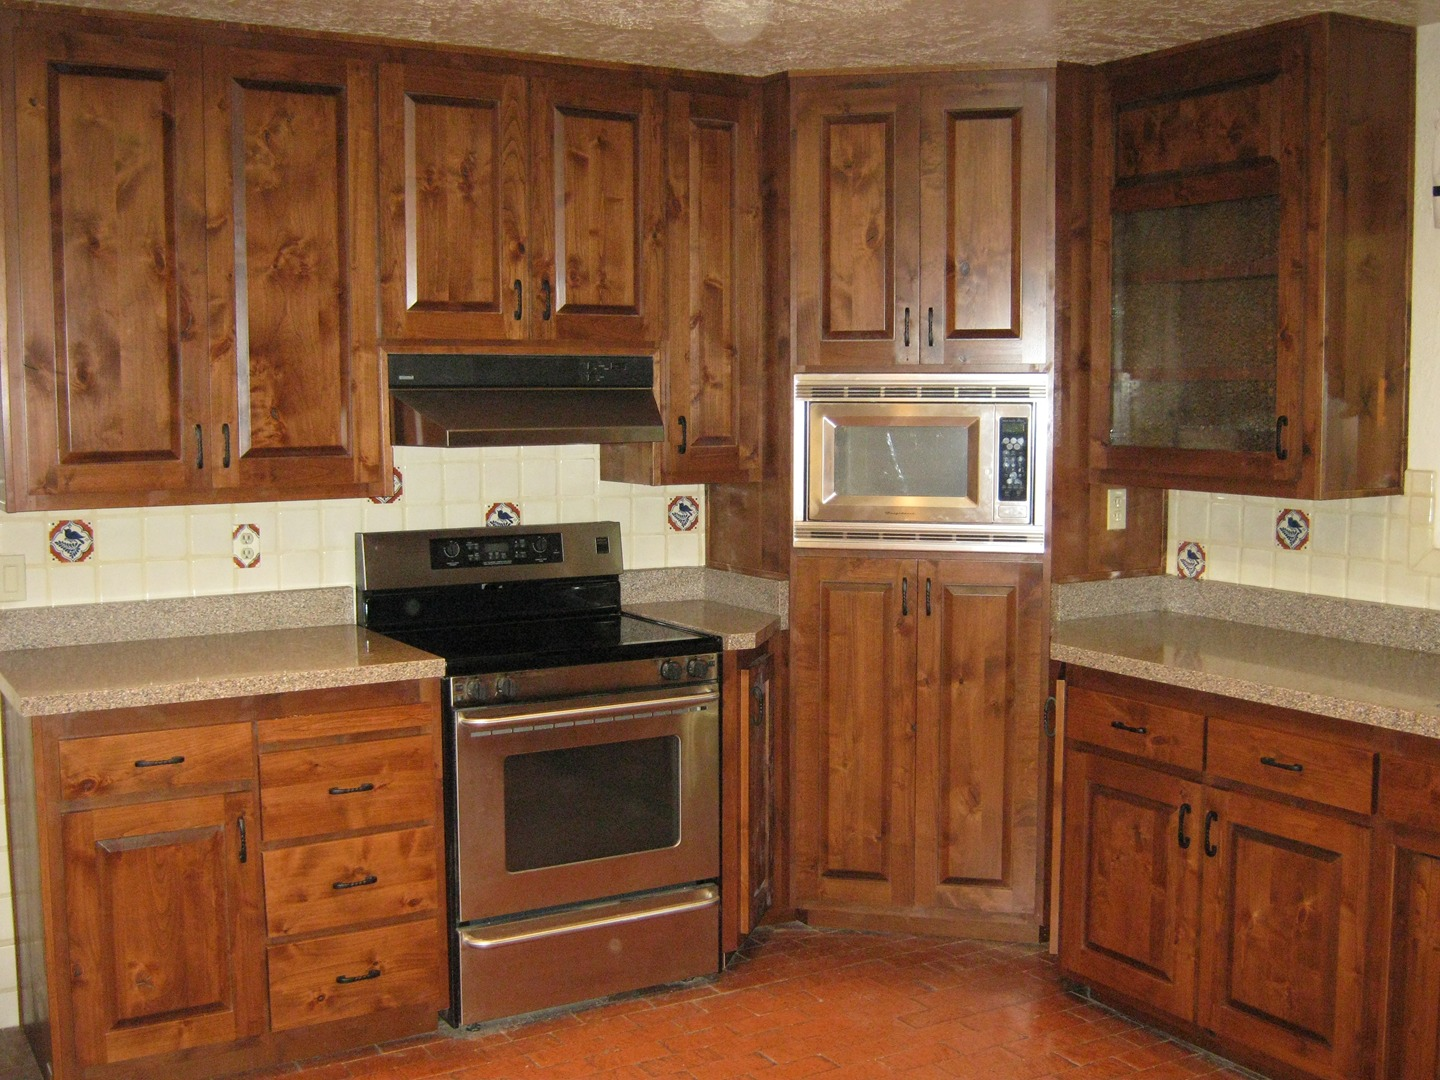 Kitchen Cabinet Refacing, Kitchen Cabinet Building - Quality ...